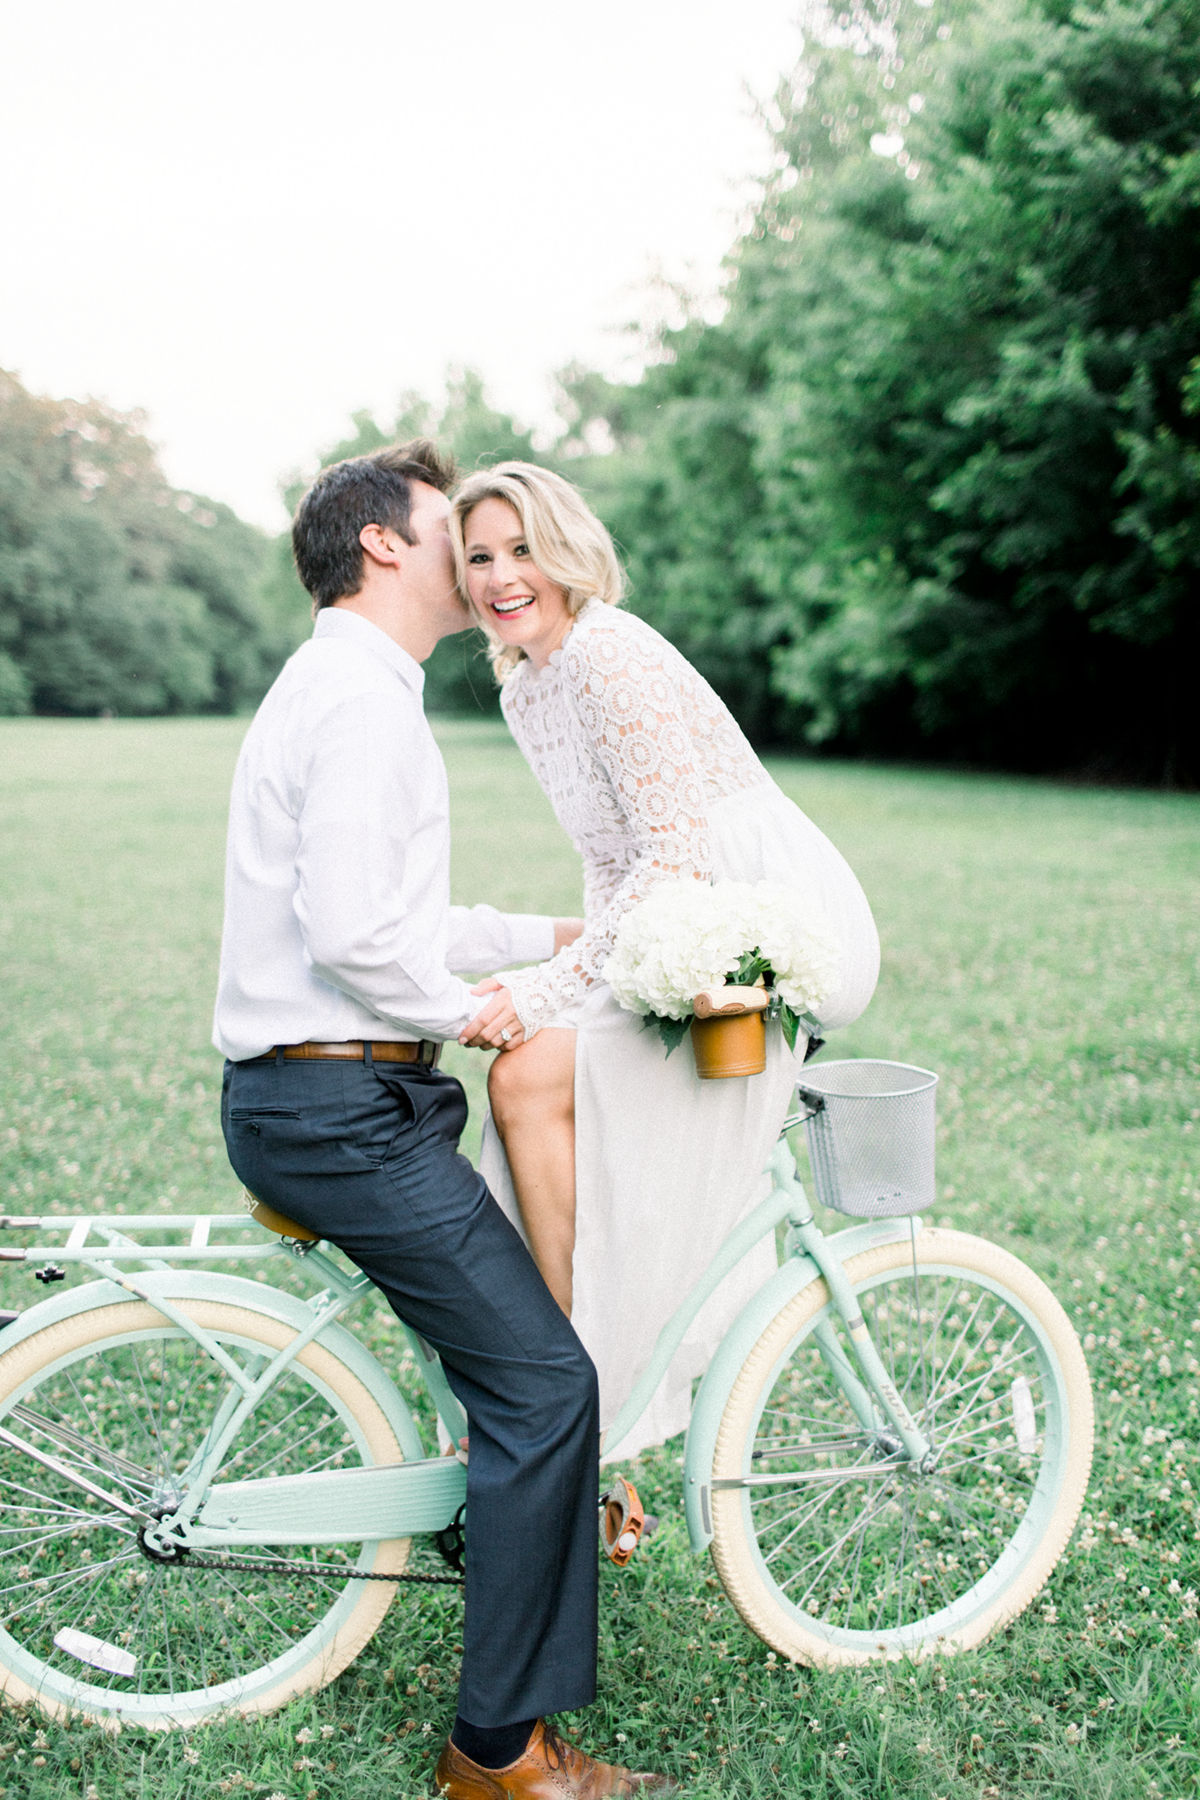 3 reasons why you should wear a LWD for engagement photos